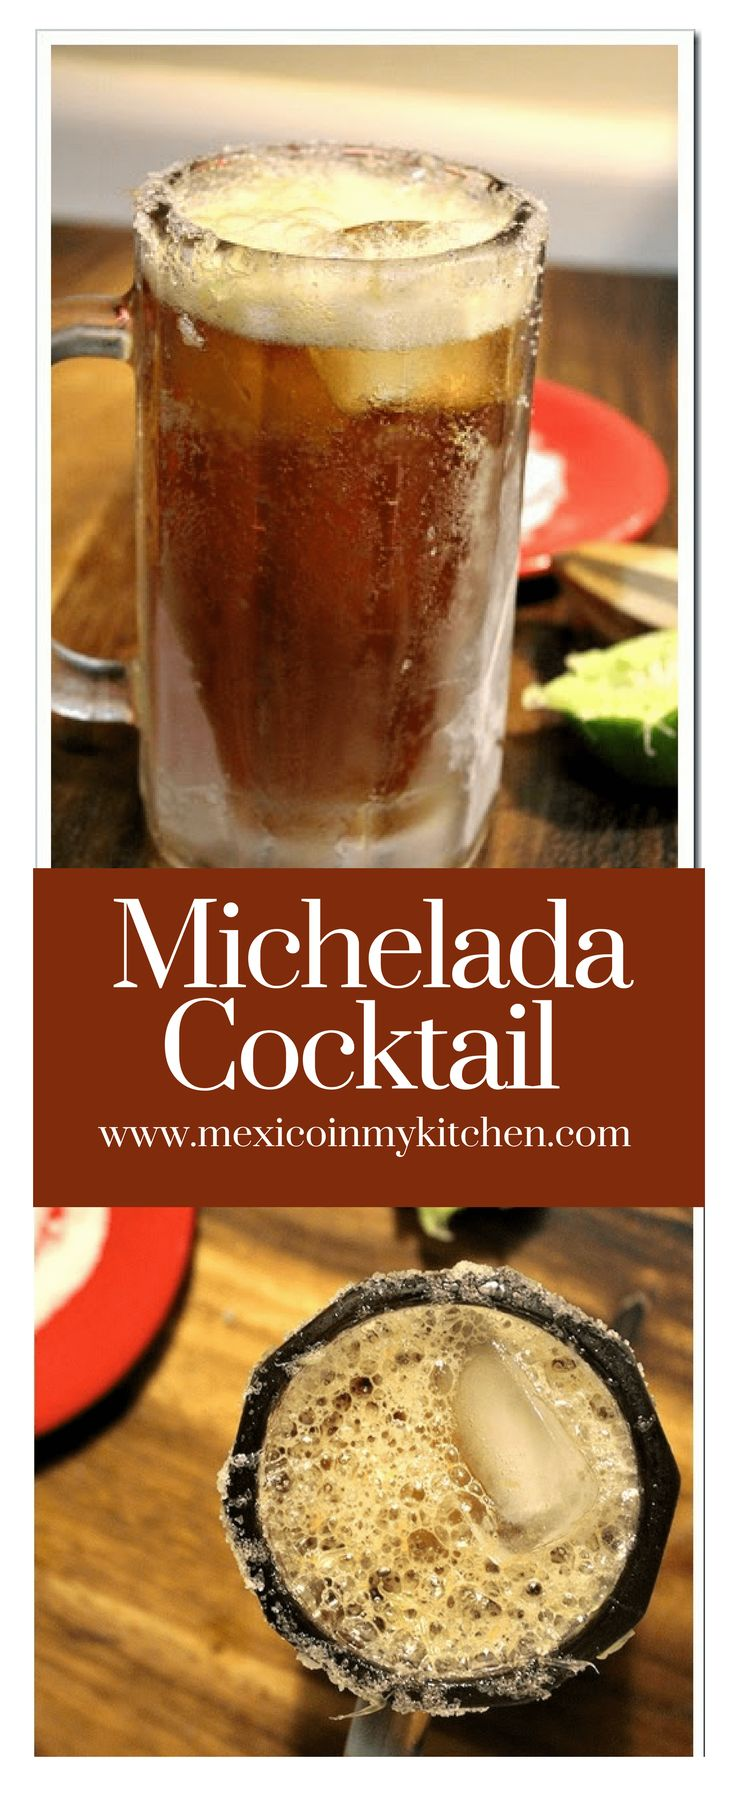 """Michelada Cocktail │ In central Mexico, people use this simple and basic recipe, but in other regions, more spices are added, and it's also known as a """"Chelada"""" #mexicanrecipes #mexicanfood #michelada #kitchen #drinks"""